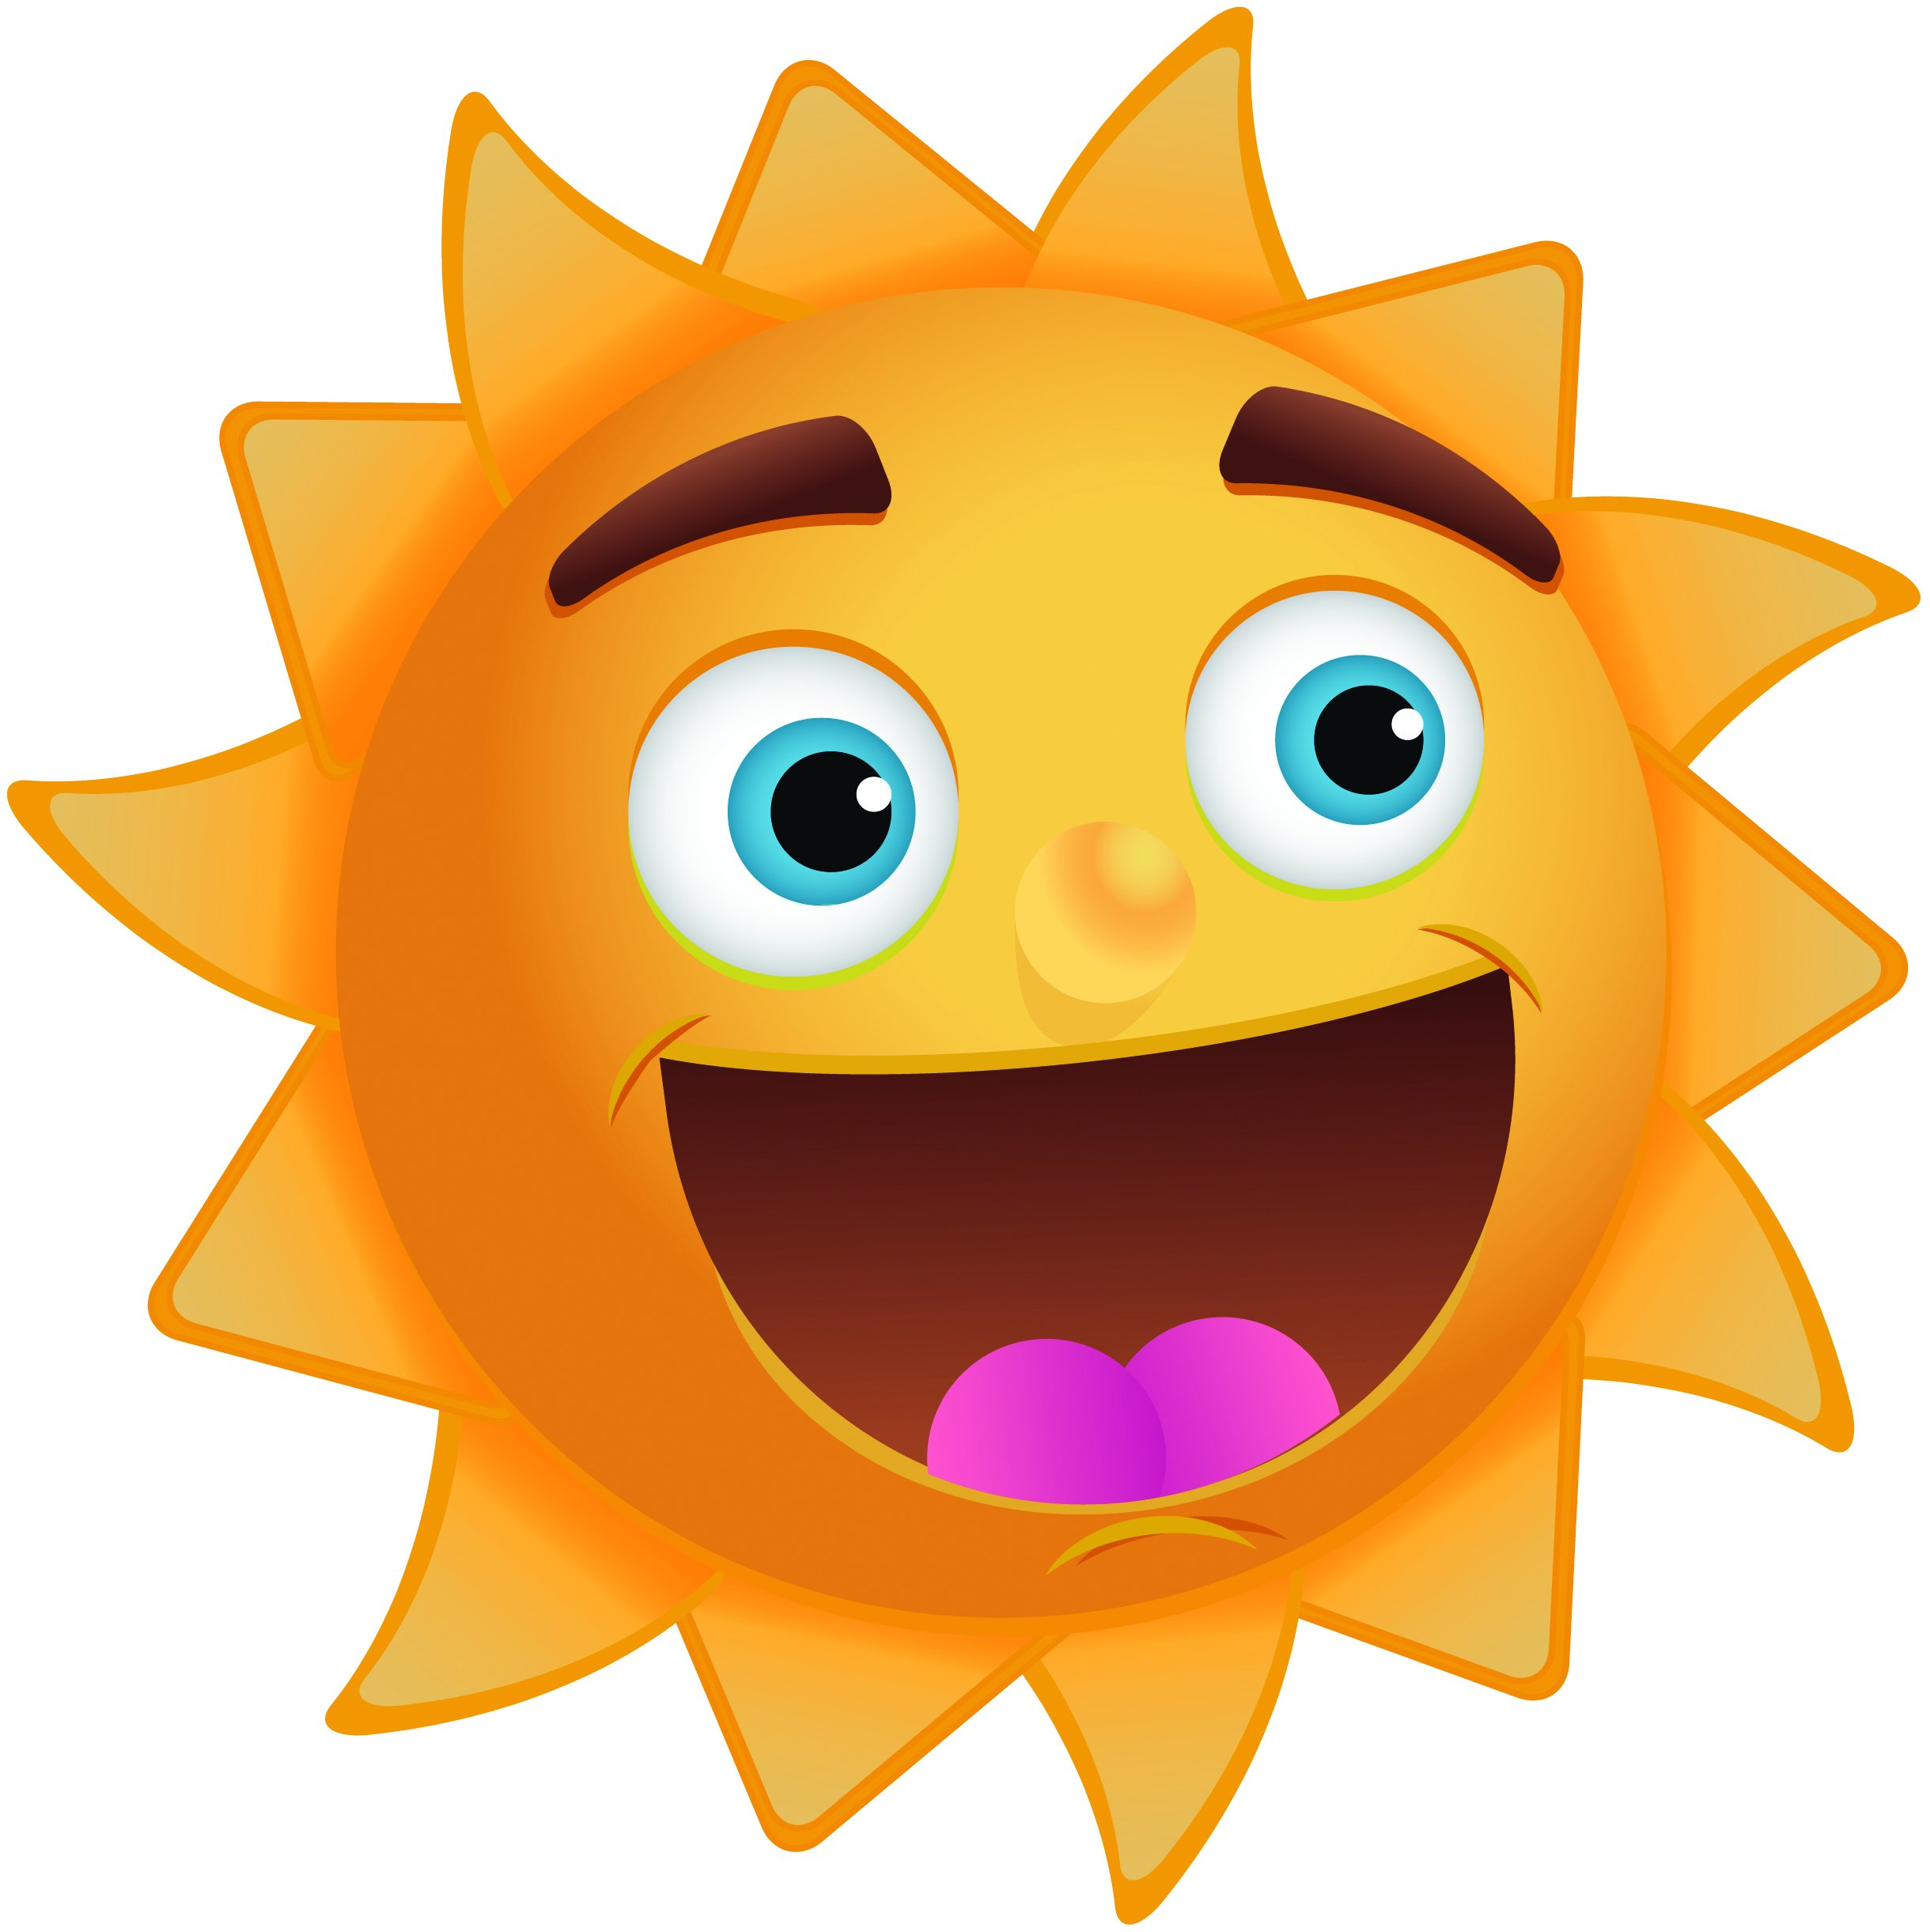 images of sunshine smiley faces allofthepicts com rh allofthepicts com Smiley-Face Emotions Clip Art Flower Smiley Face Clip Art